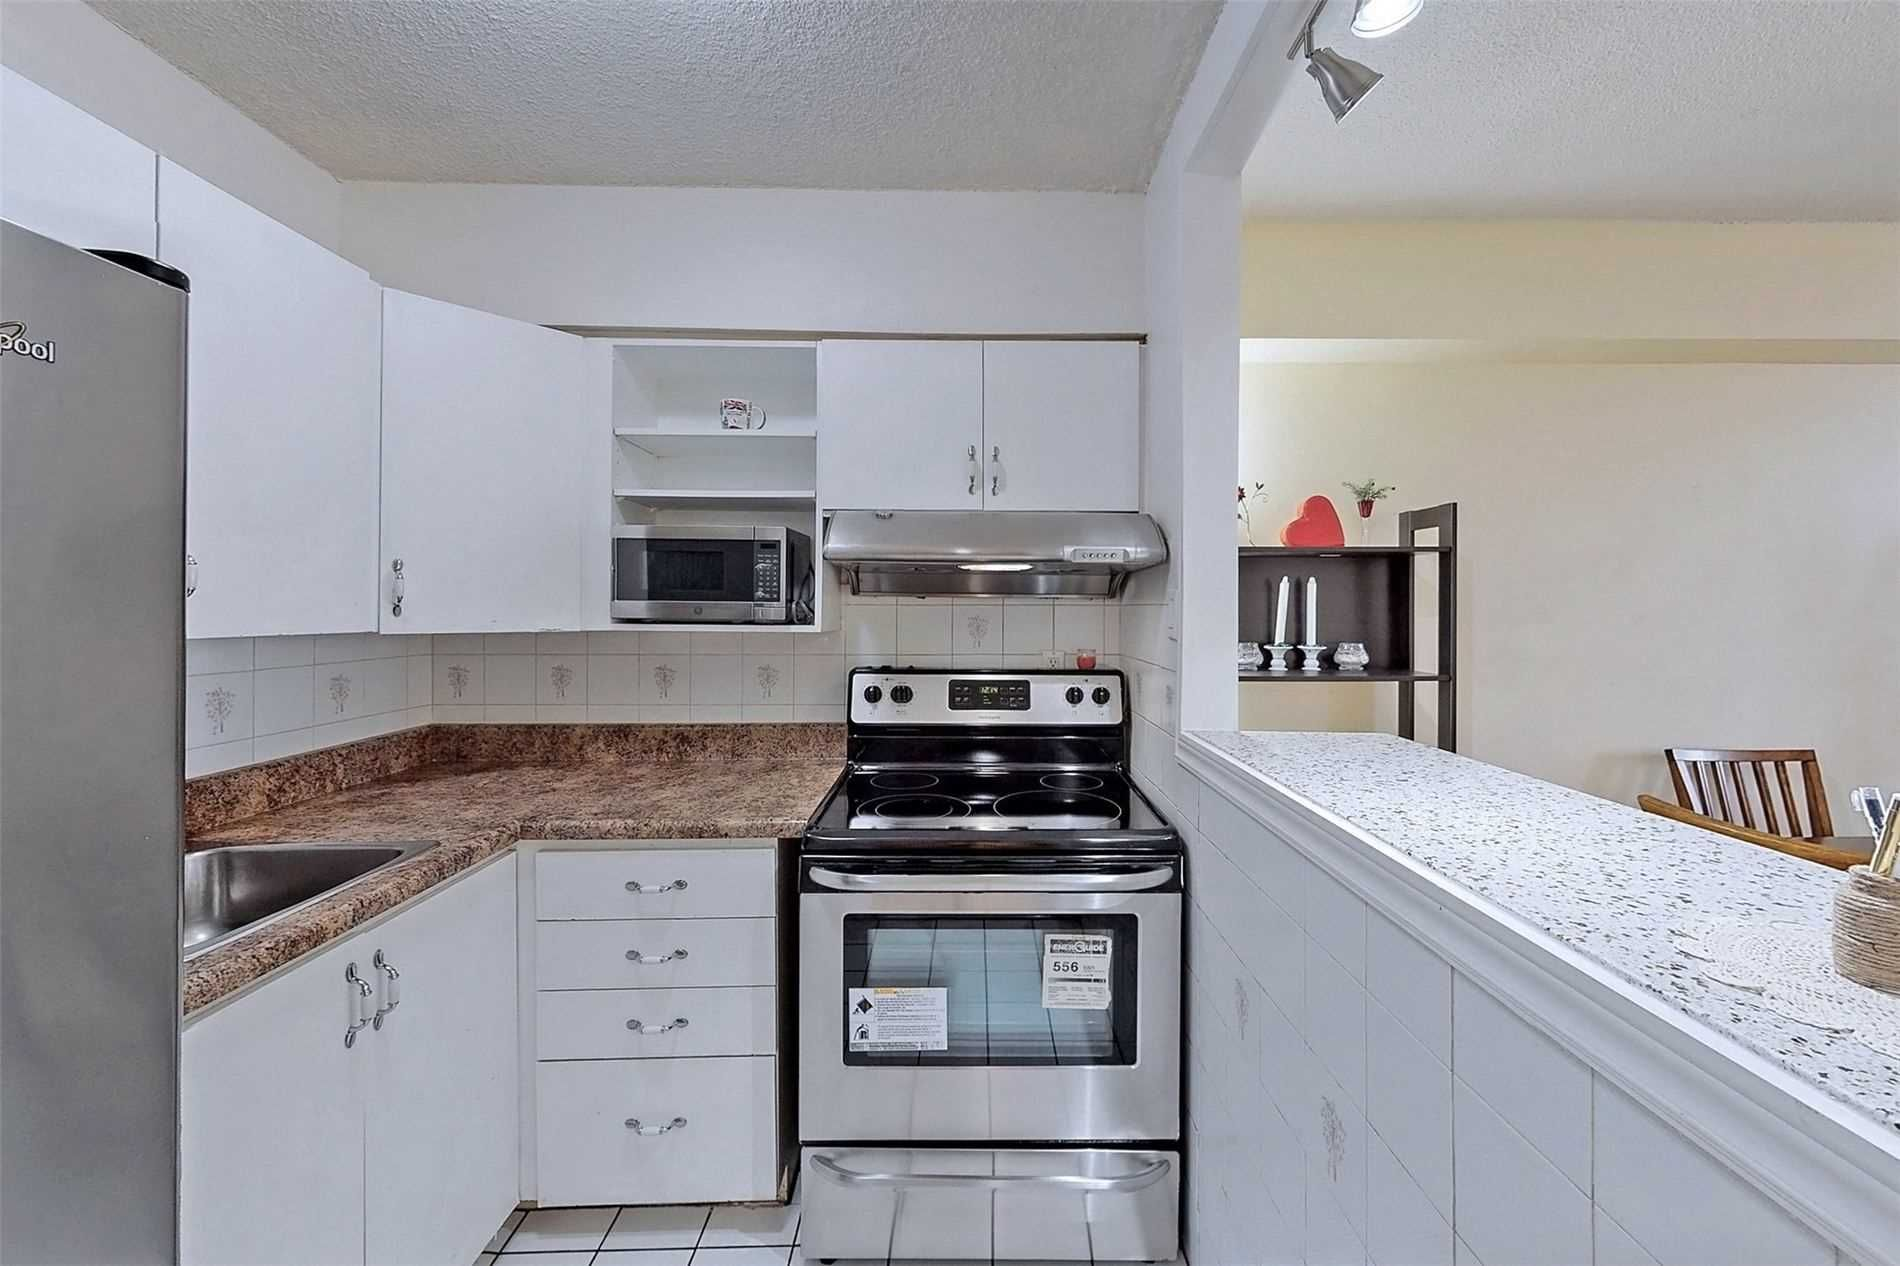 940 Caledonia Rd, unit 511 for sale in Toronto - image #2